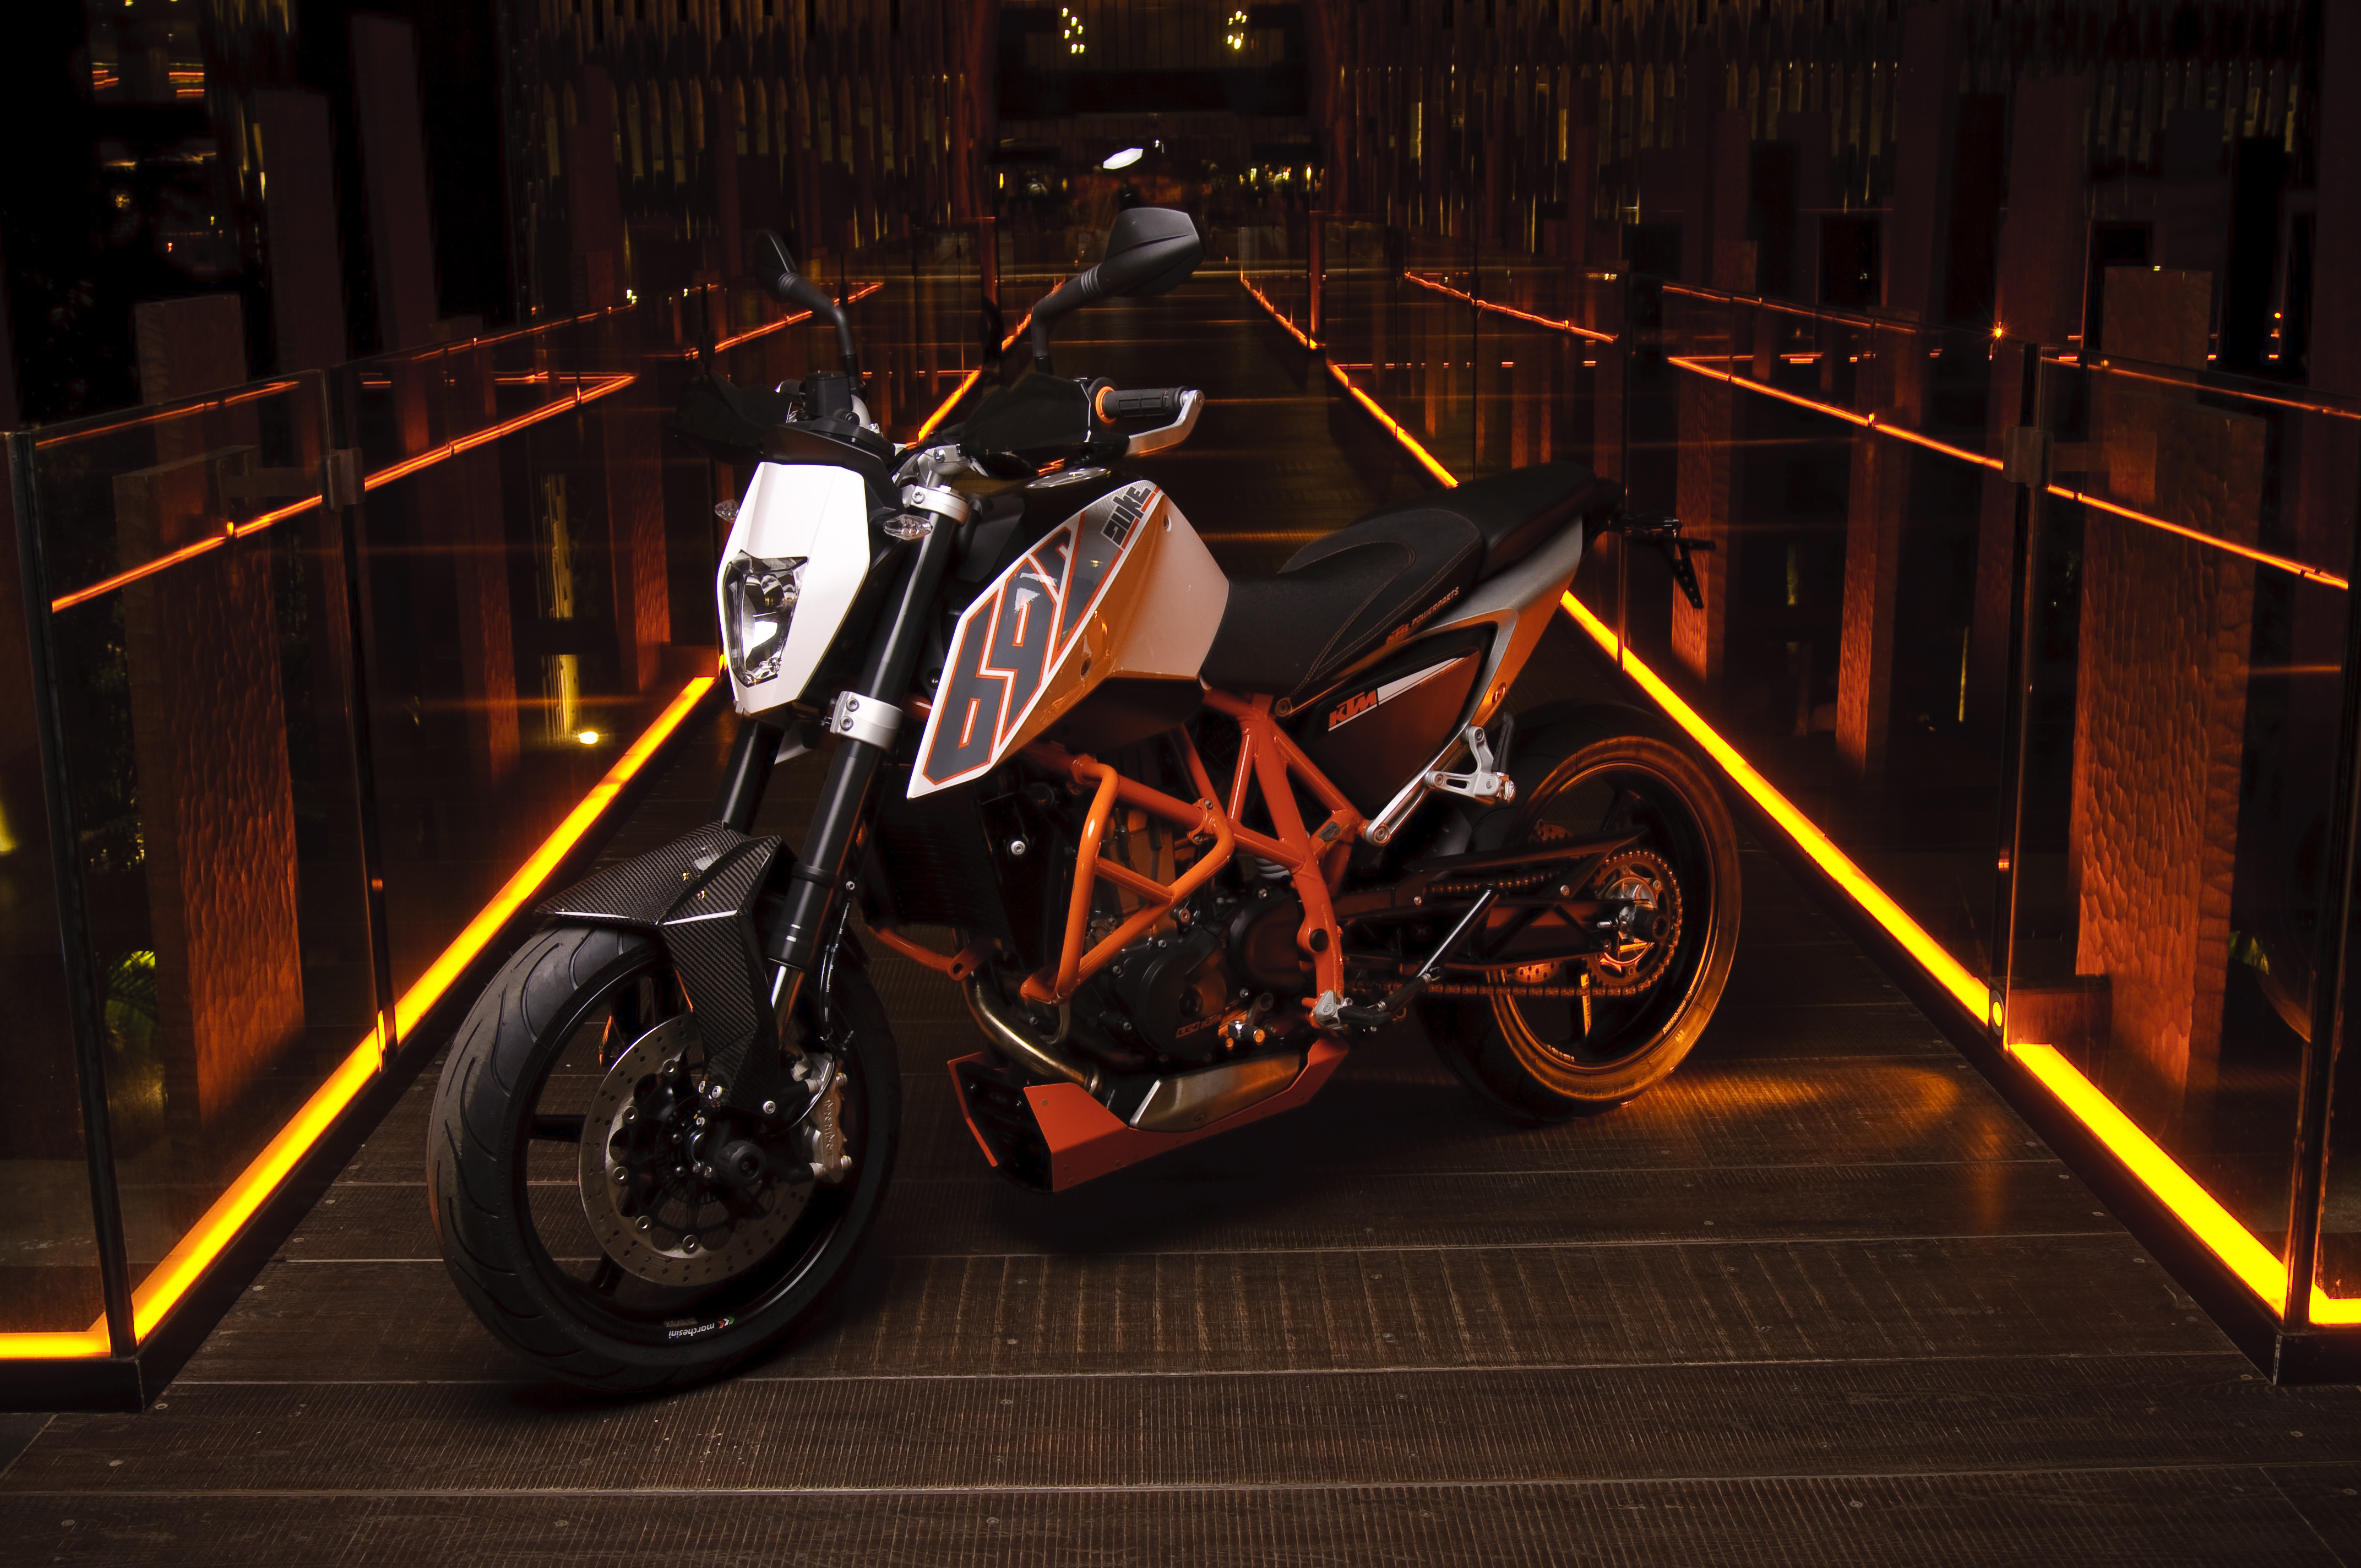 Ktm Duke 200 Wallpaper Hd Images Crazy Gallery 4288x2848